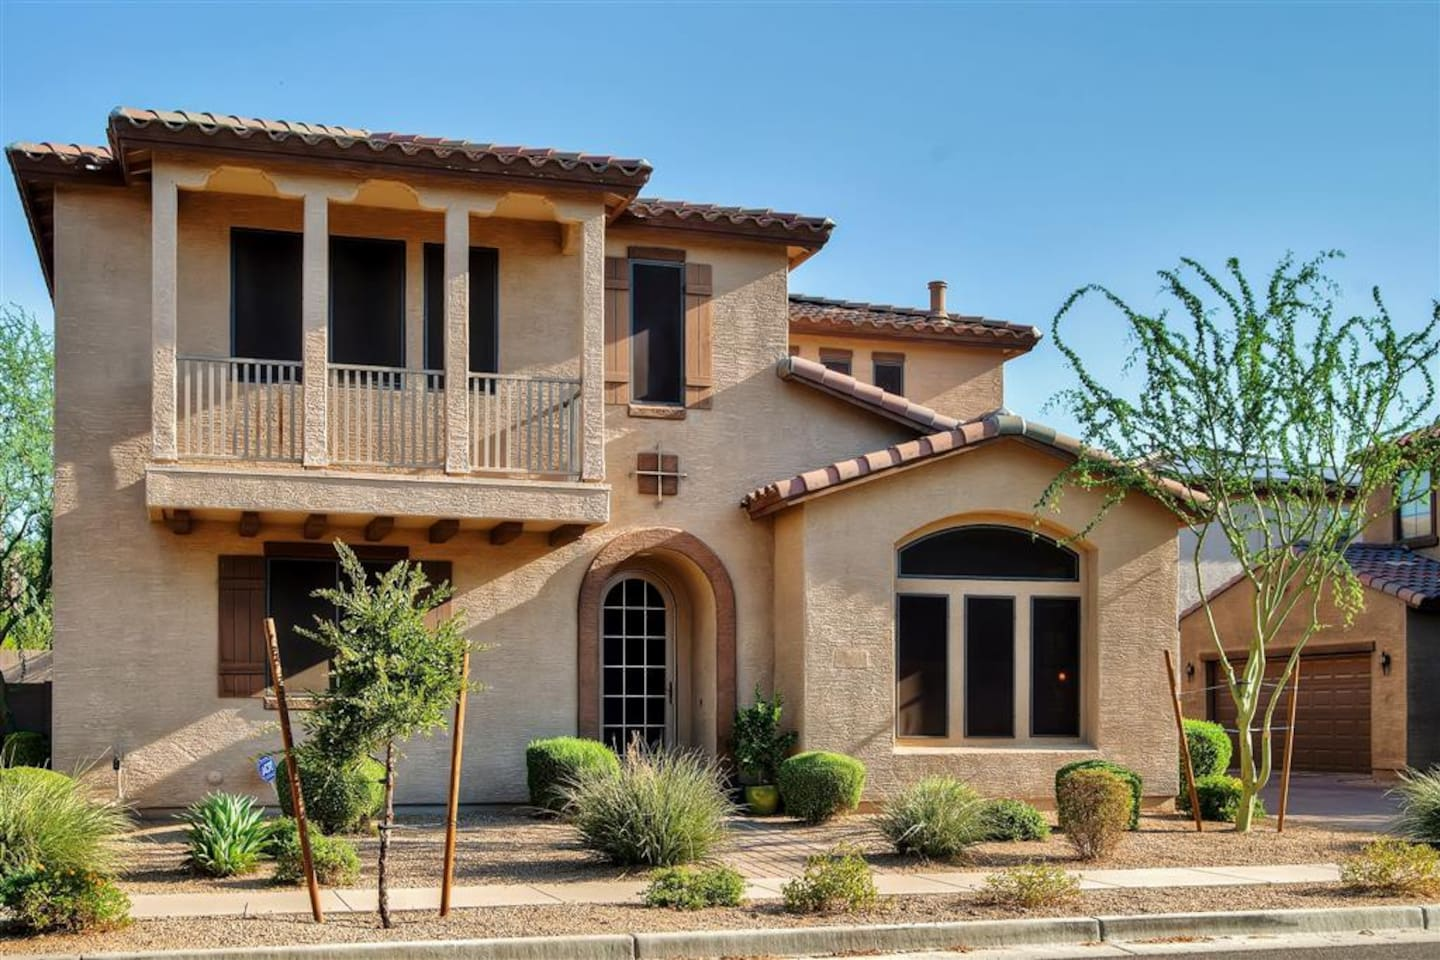 tuscan style 3br phoenix house w private backyard houses for rent